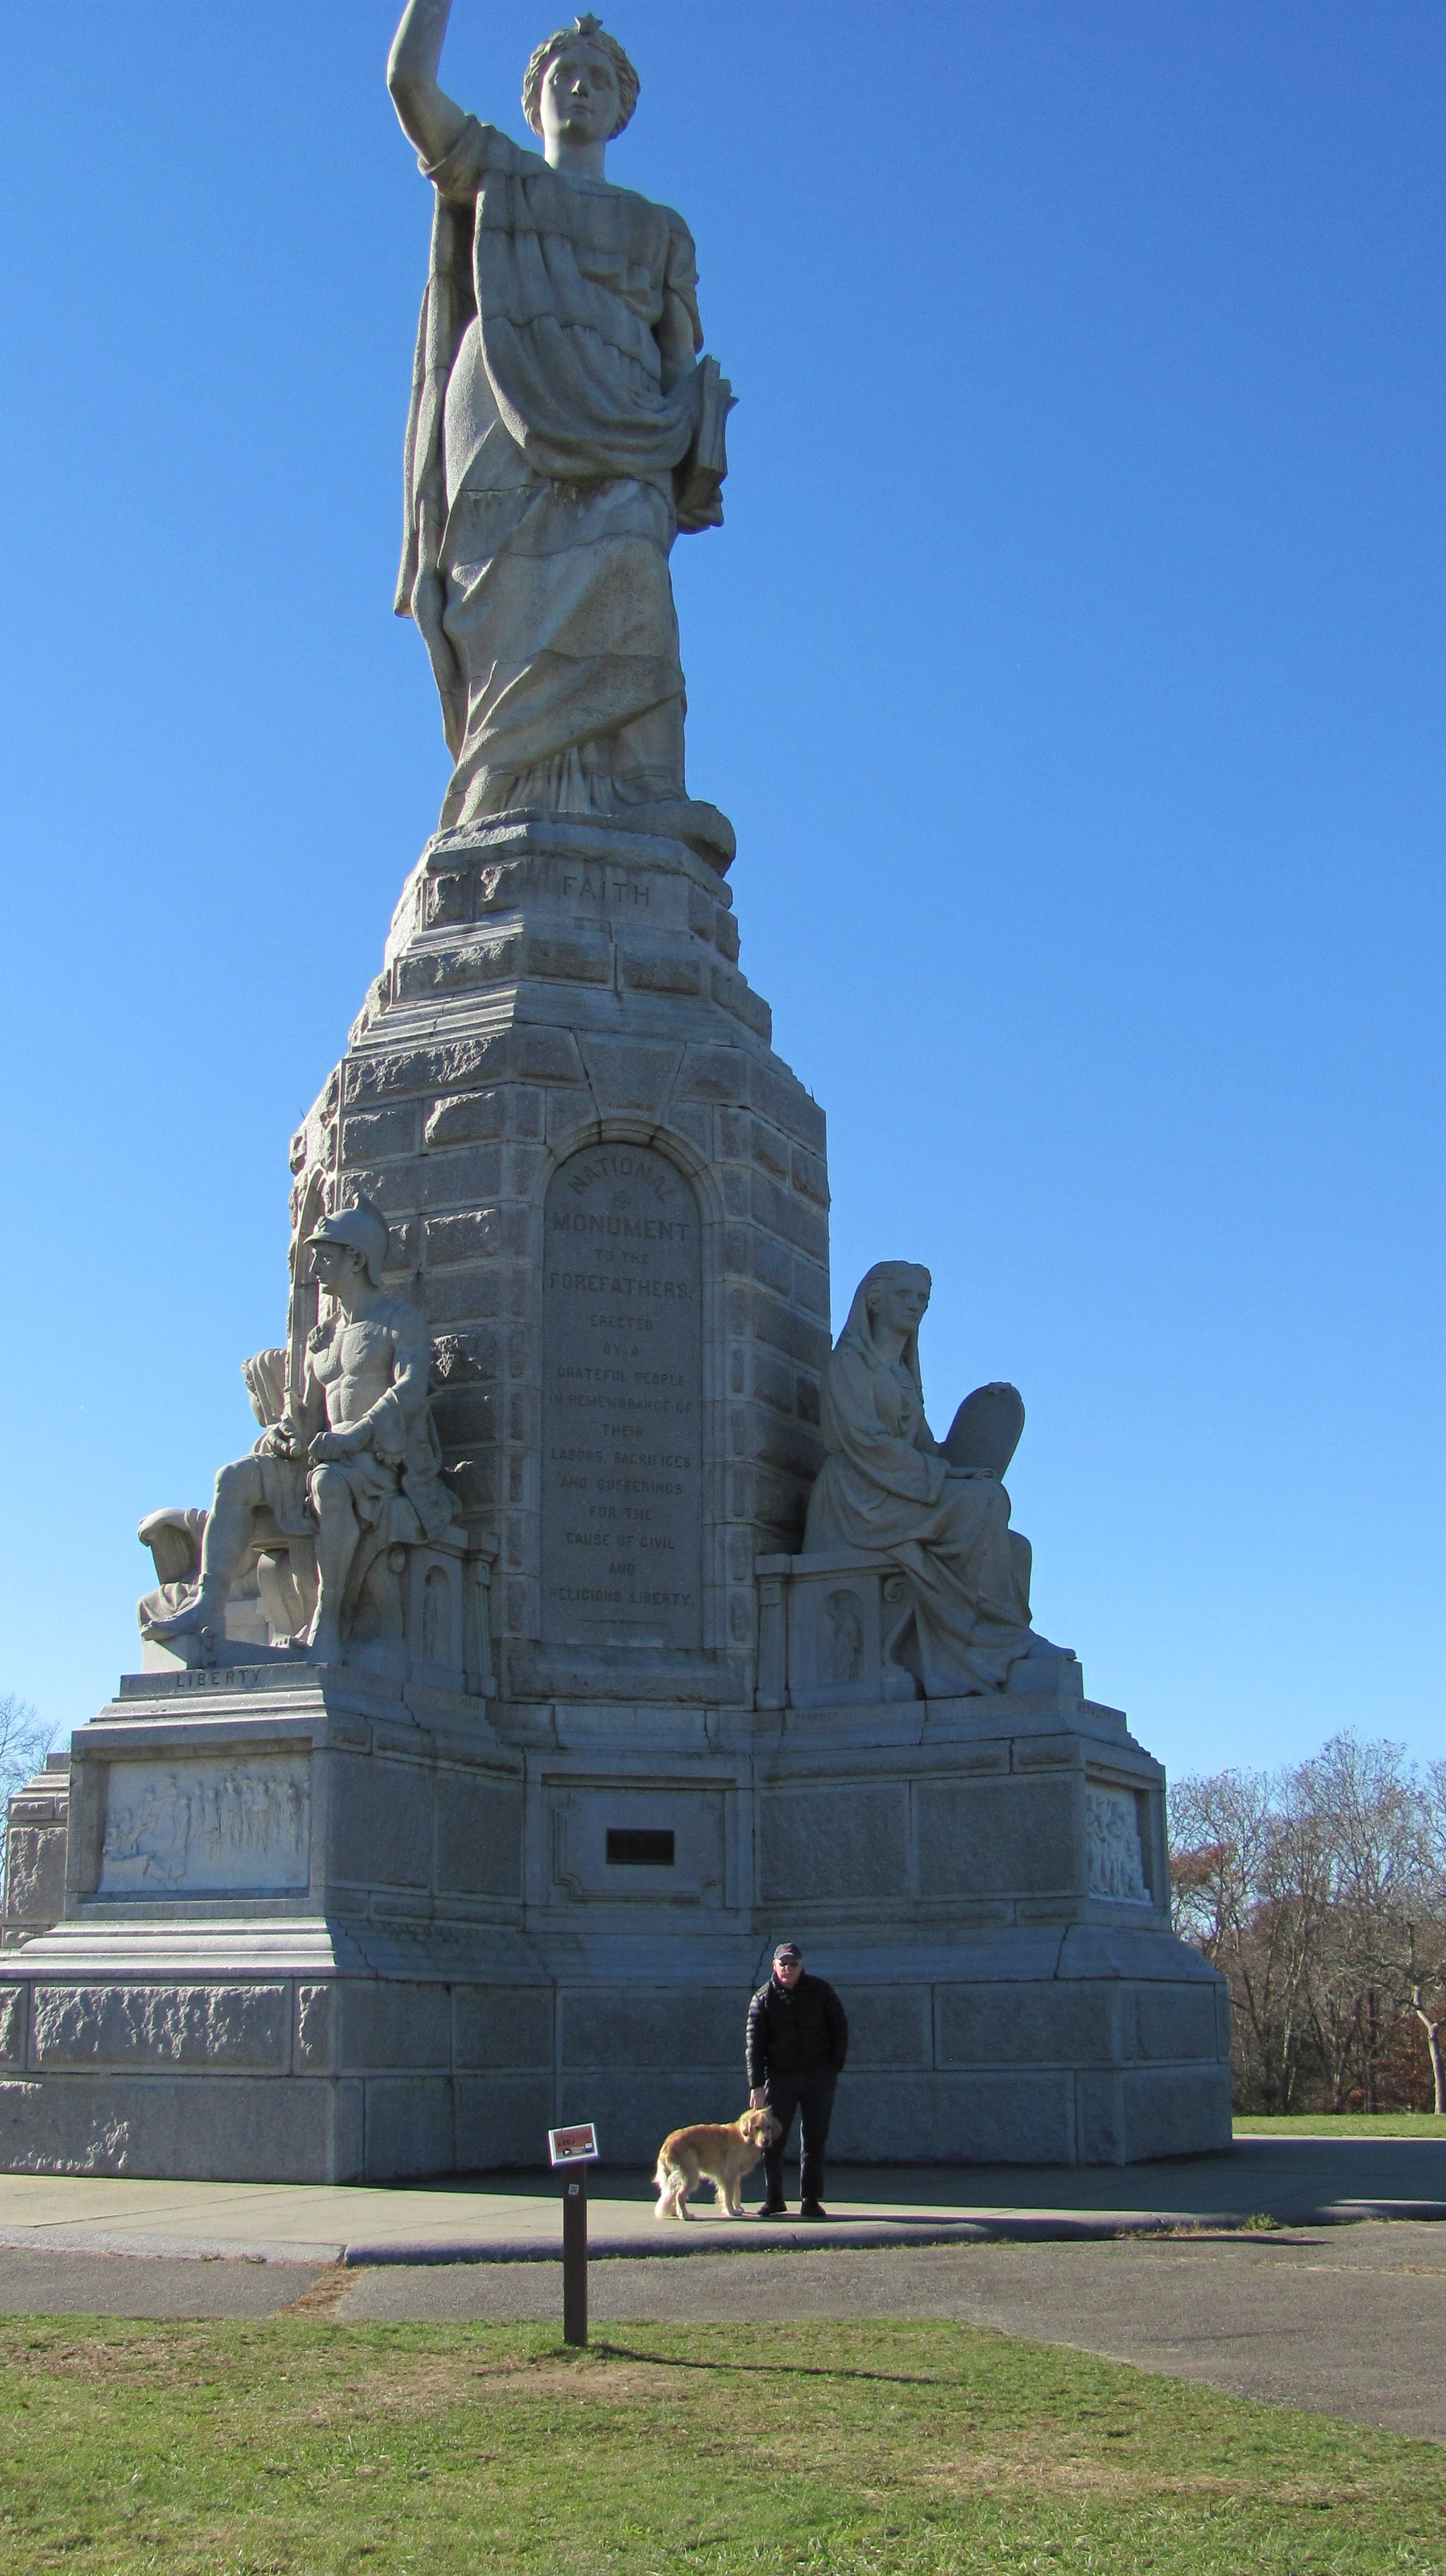 Plymouth Turkey Trot features the least visited most important monument—National Monument to the Forefathers